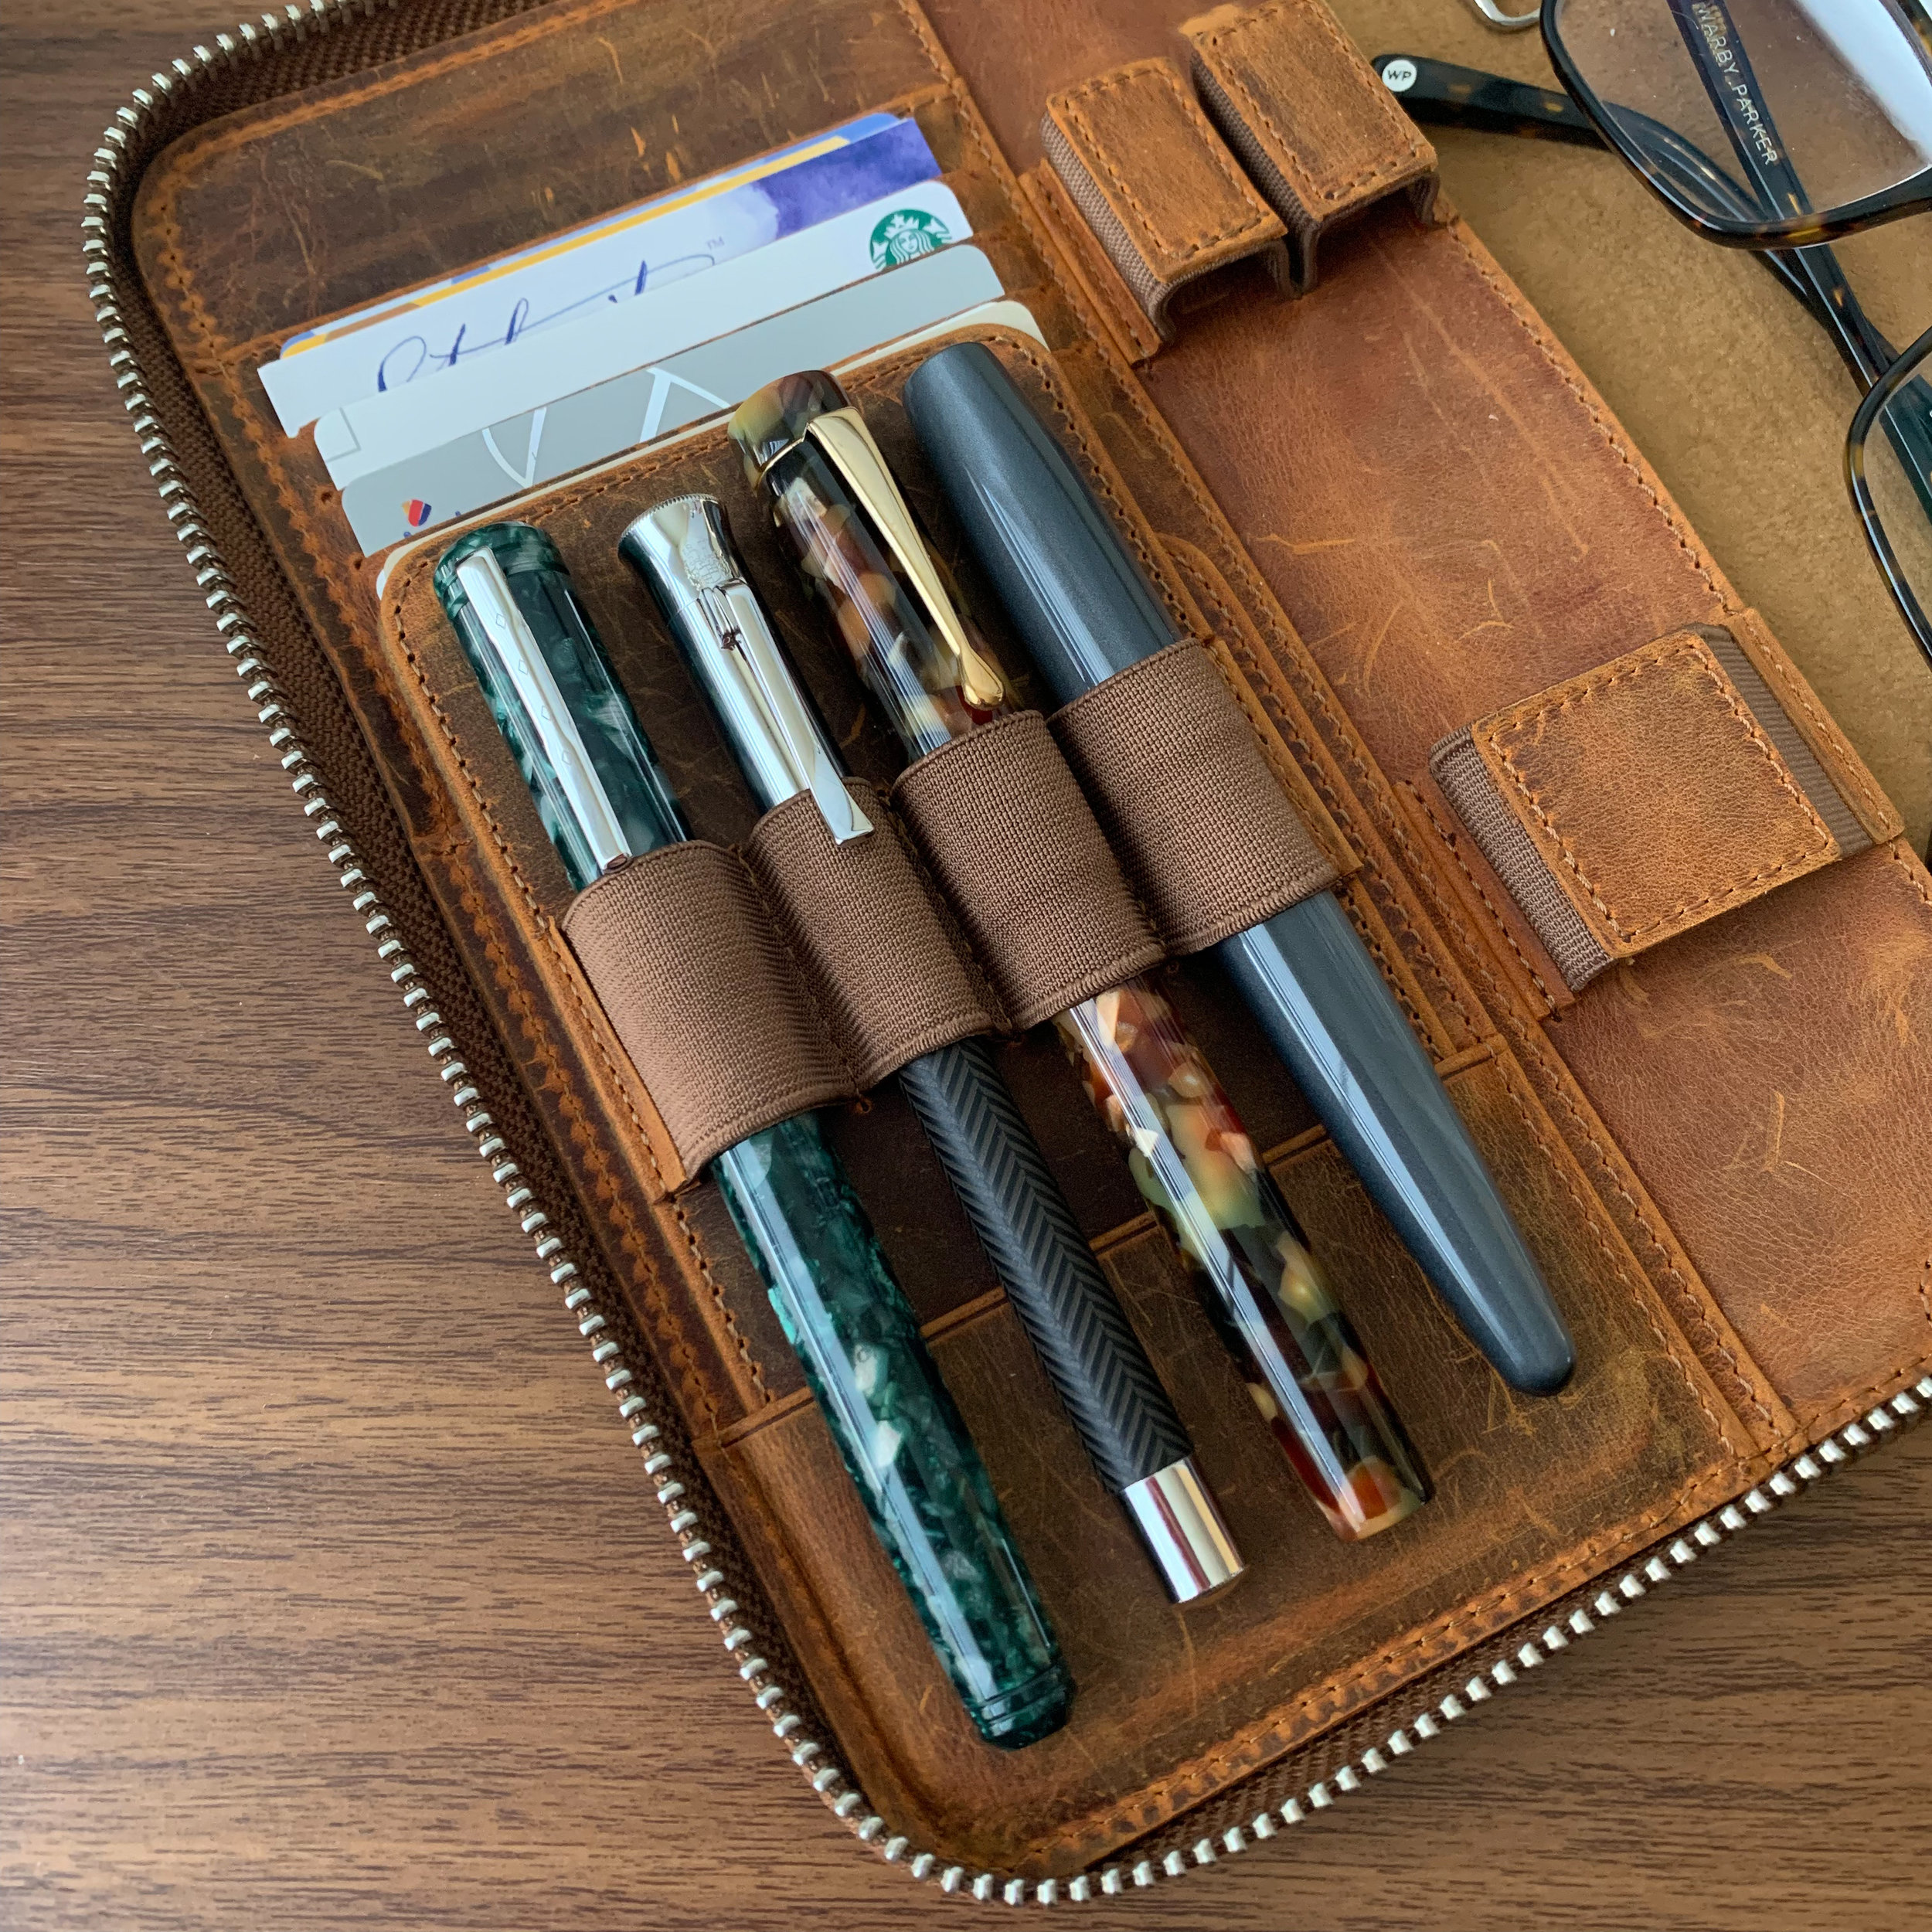 "The two on the left are my 2019 D.C. Pen Purchases, shown here in a  Galen Leather A5 Zippered Notebook Folio in Crazy Horse Brown distressed leather . Check out  my review of the Galen Leather A5 ""zipfolio""  here."